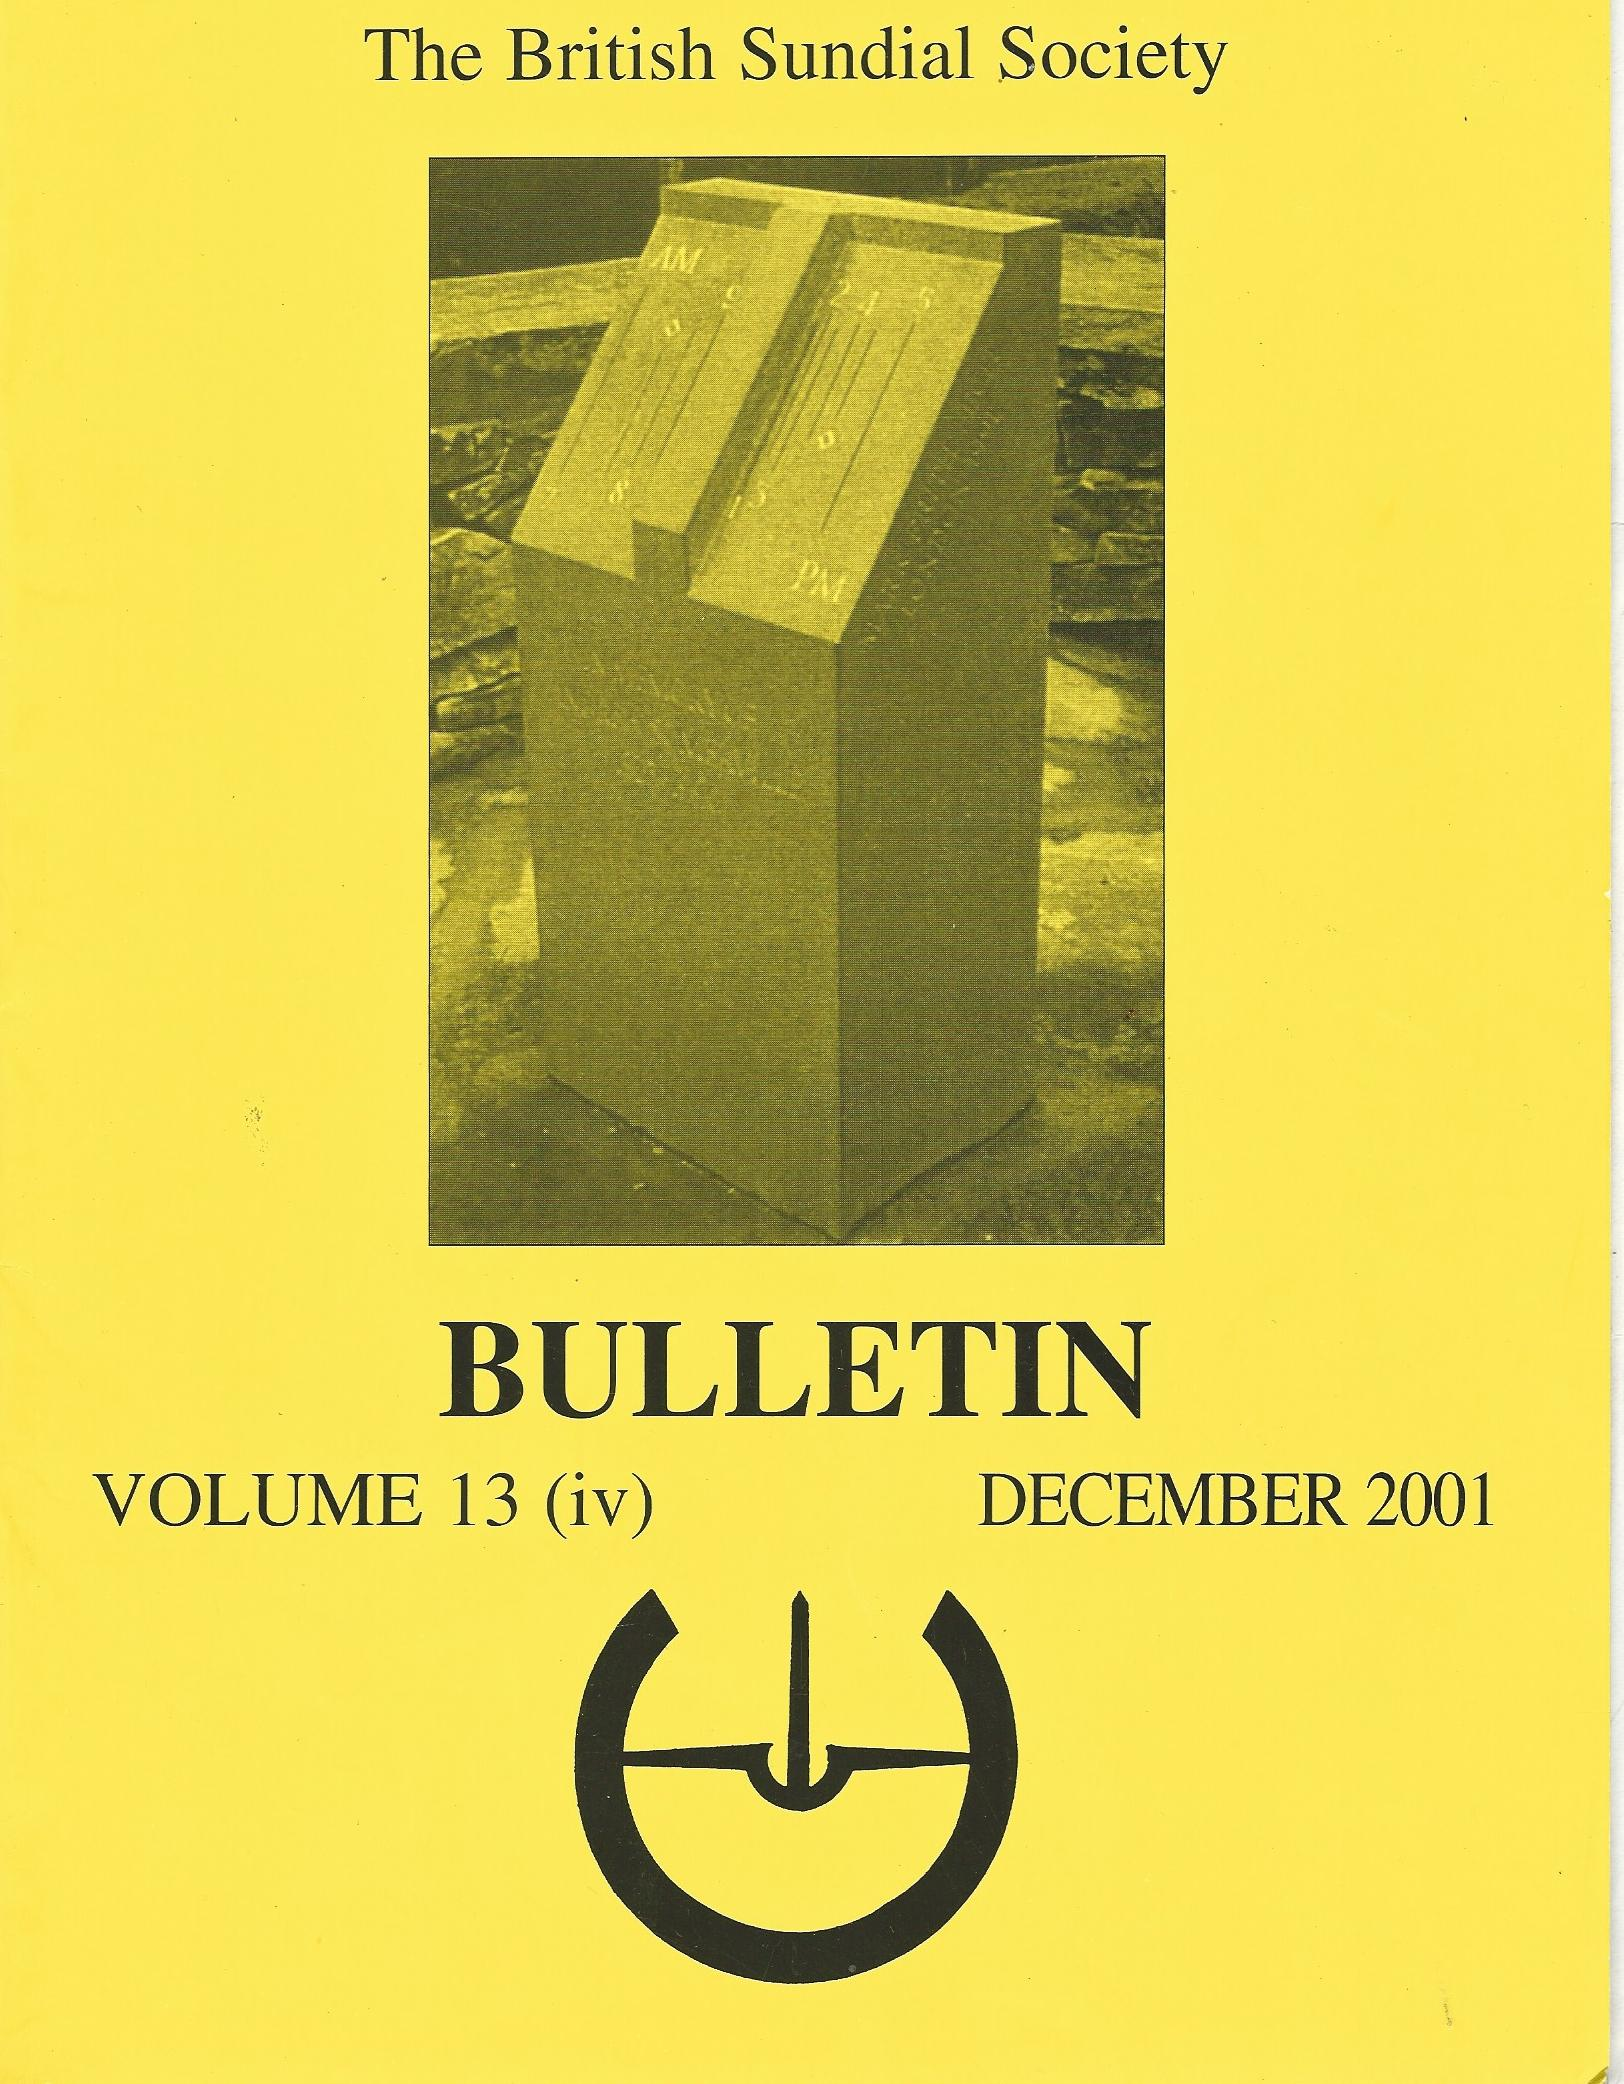 Image for The British Sundial Society Bulletin Volume 13 (iii) September2001.